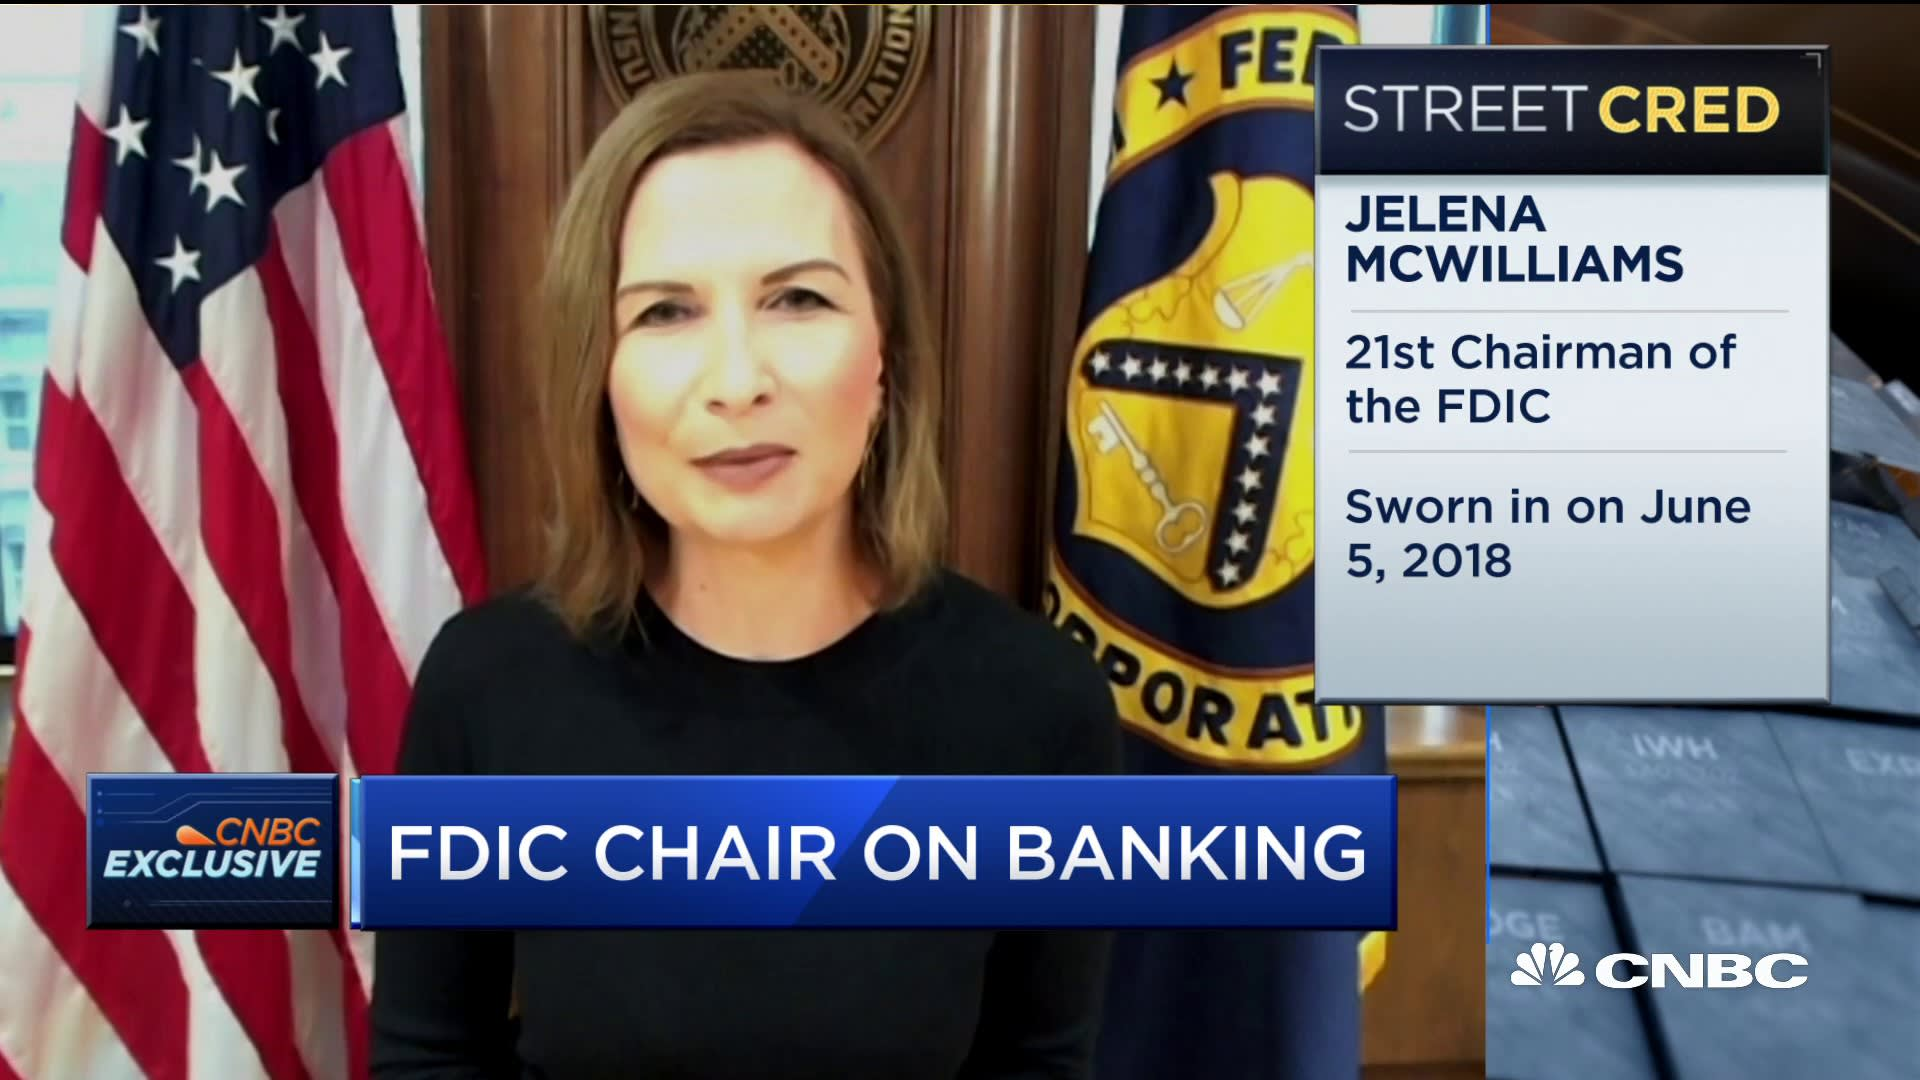 FDIC Chair McWilliams: The survivability of community banks depends on whether they can adapt quickly